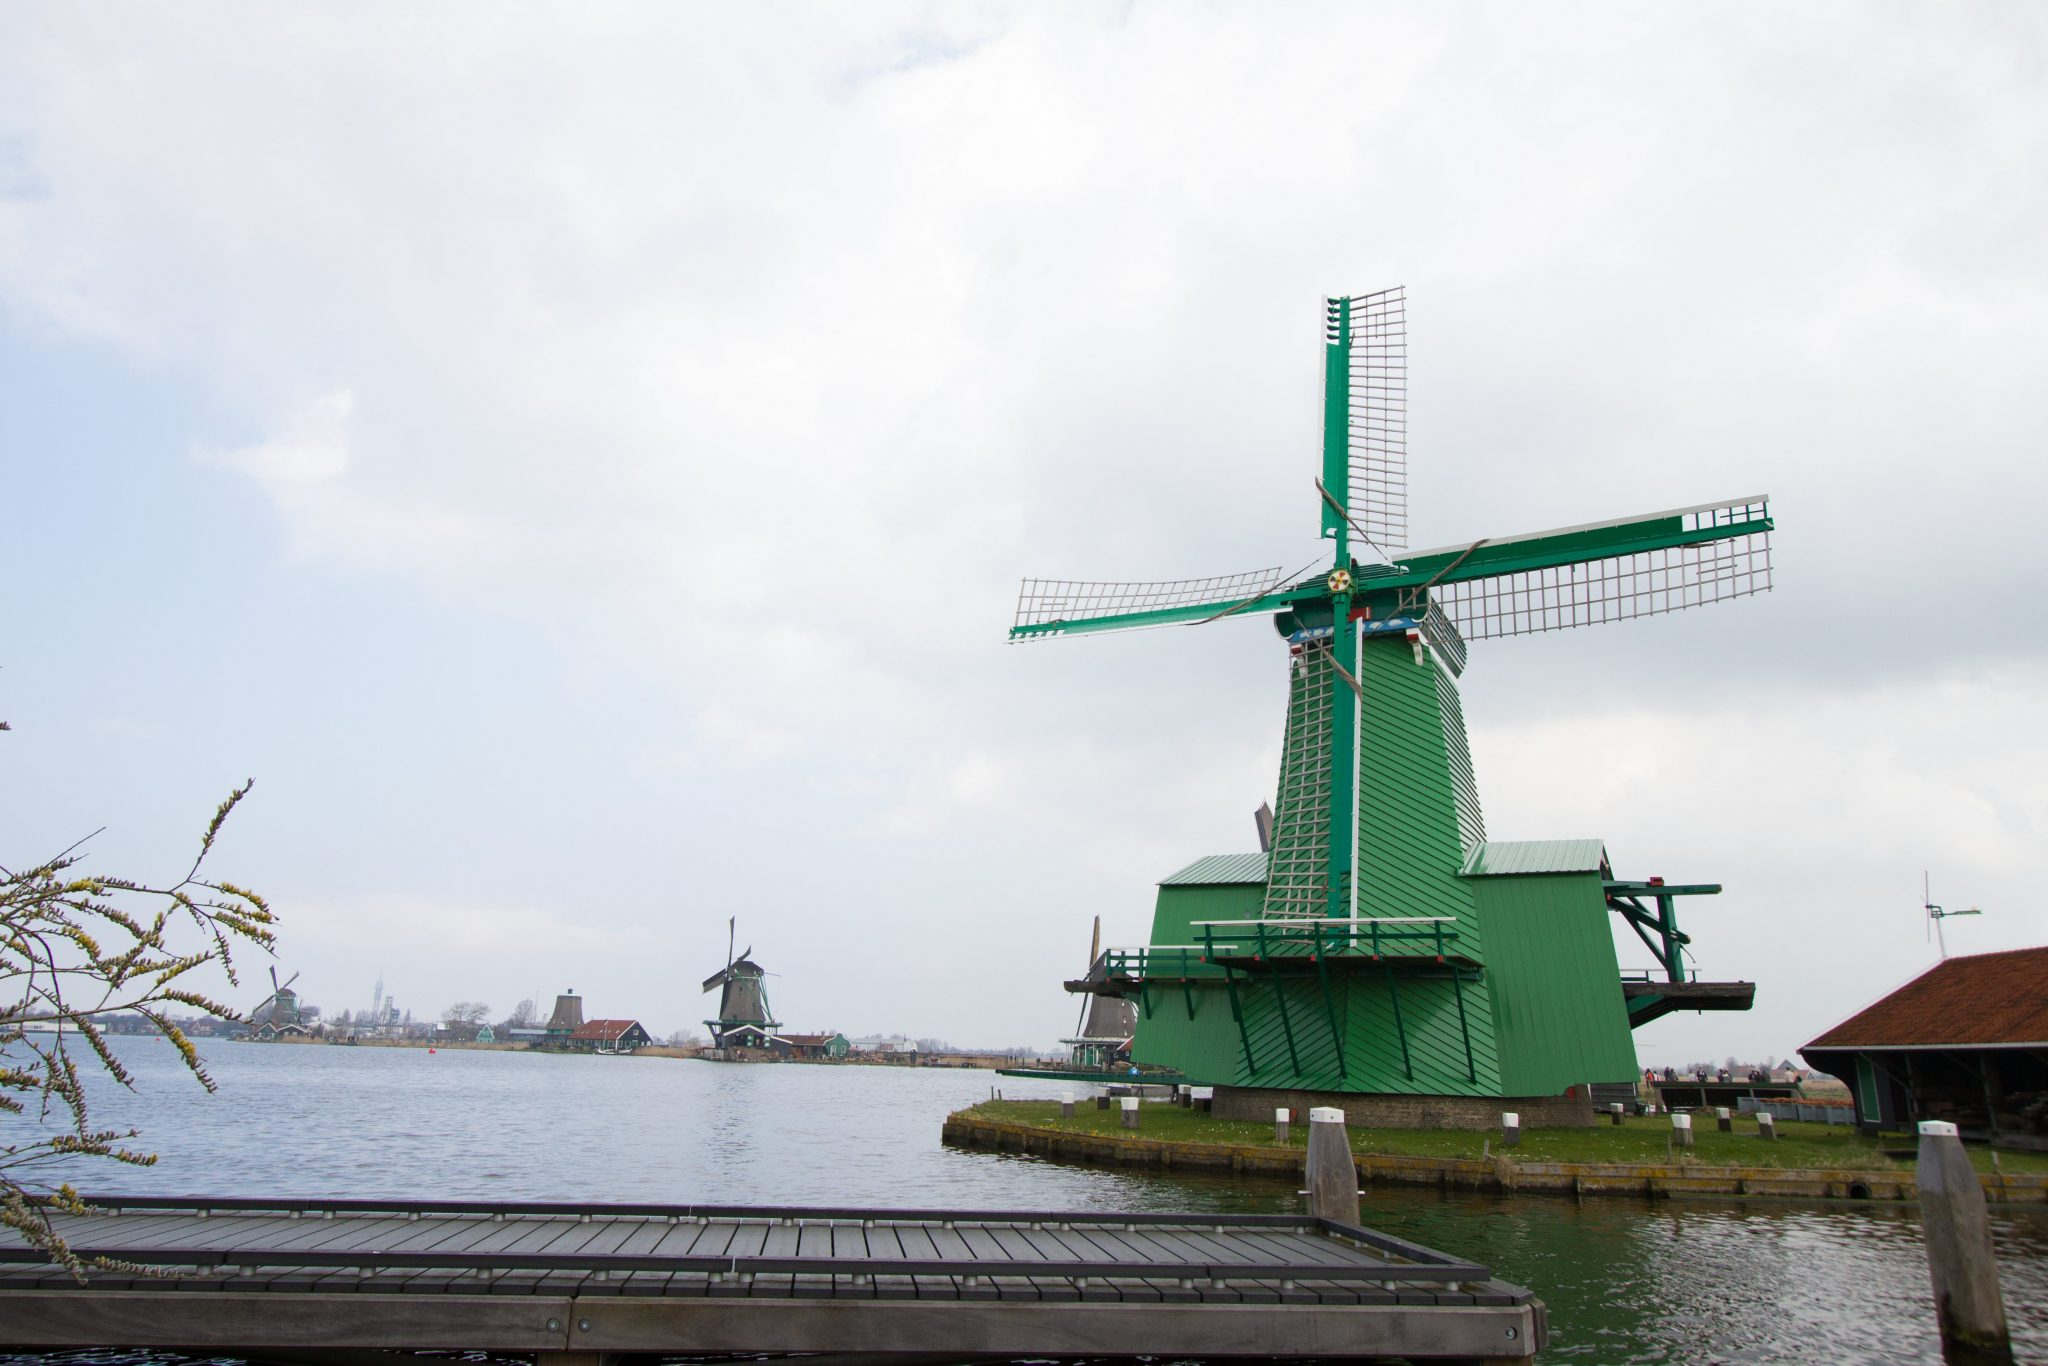 Day Trip to Zaanse Schans